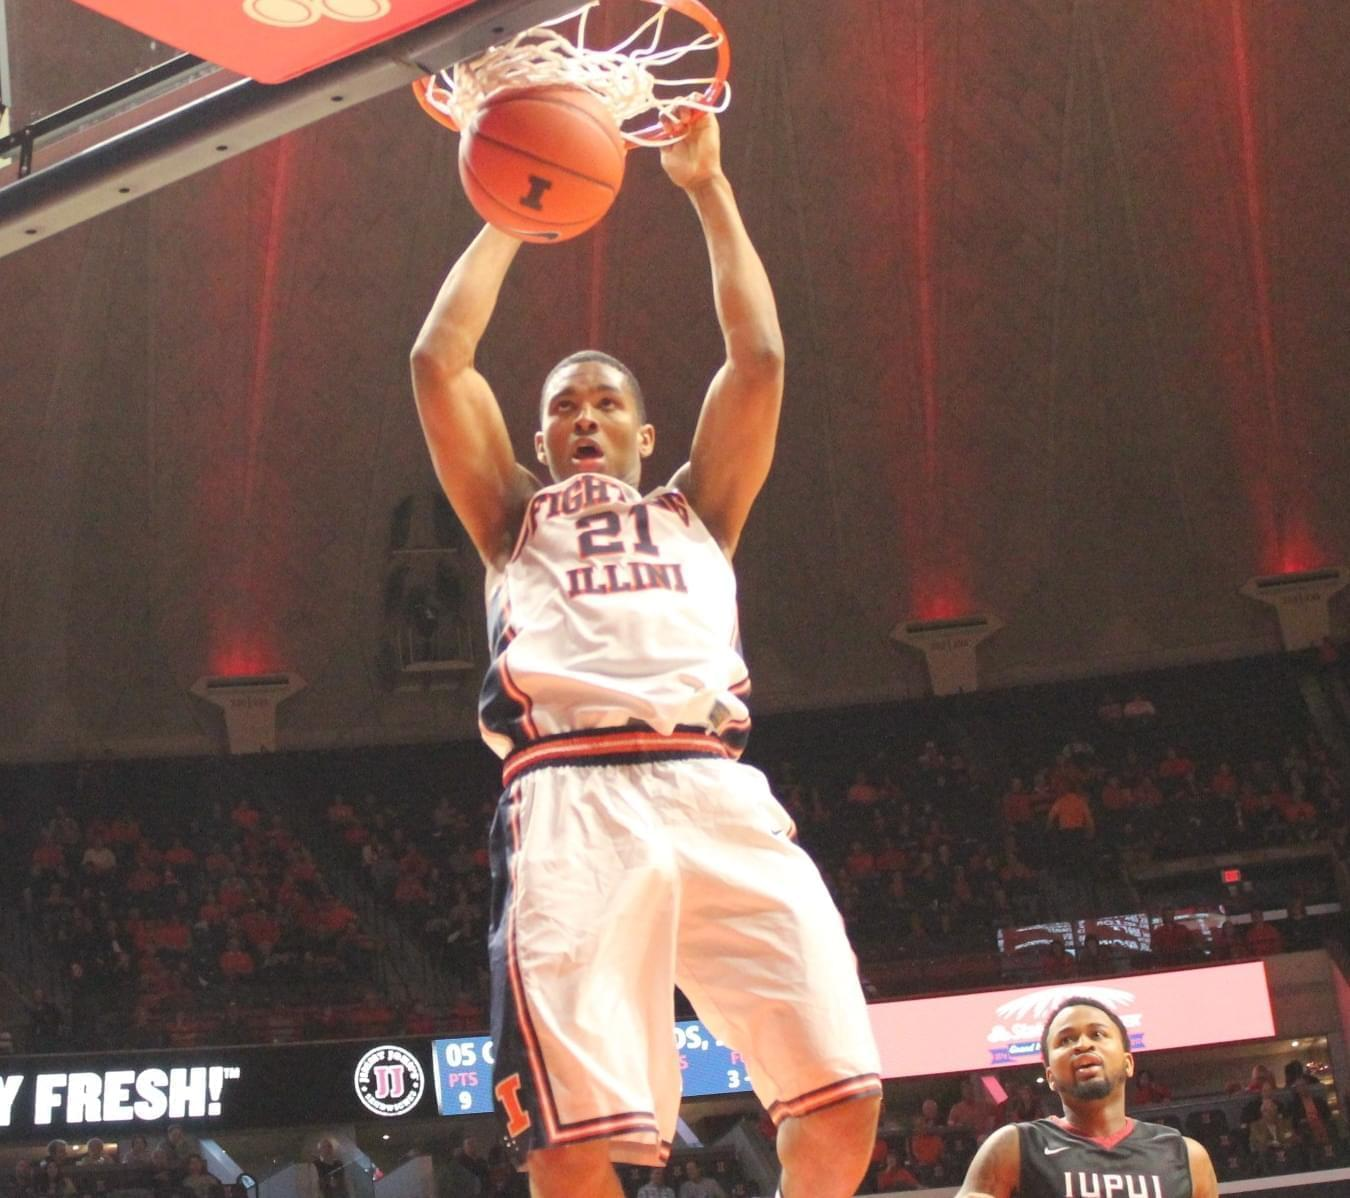 Illinois' Malcolm Hill in a Tuesday night game against Indiana University–Purdue University Indianapolis